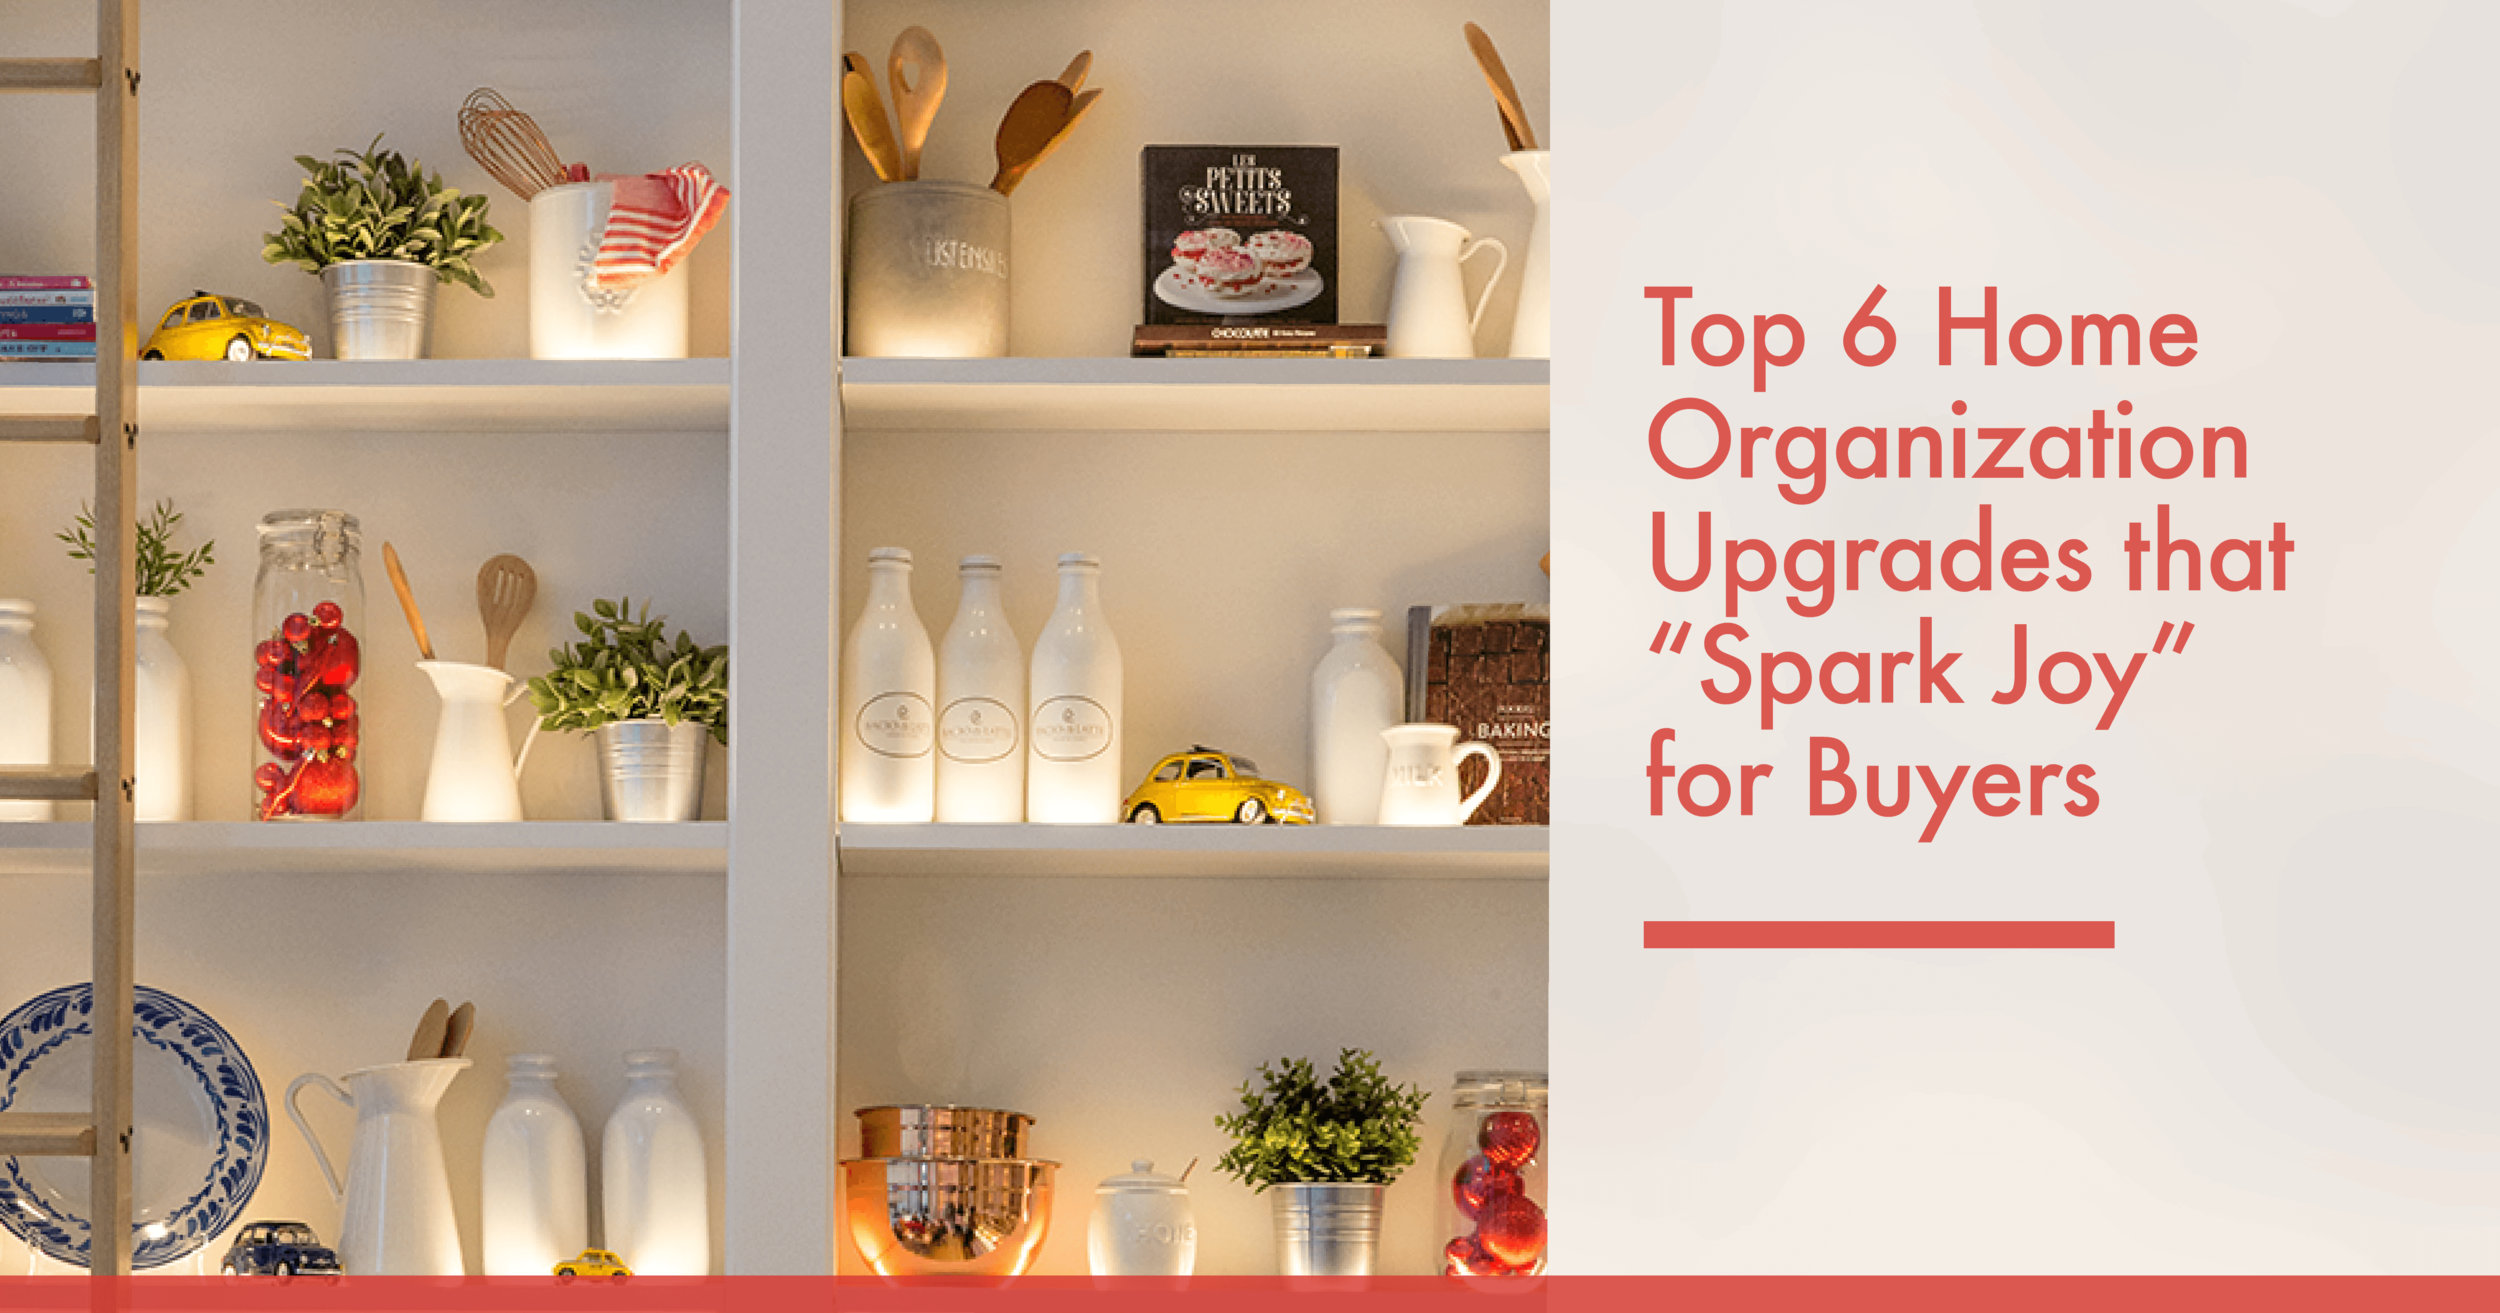 Top 6 Home Organization Upgrades that Spark Joy for Buyers